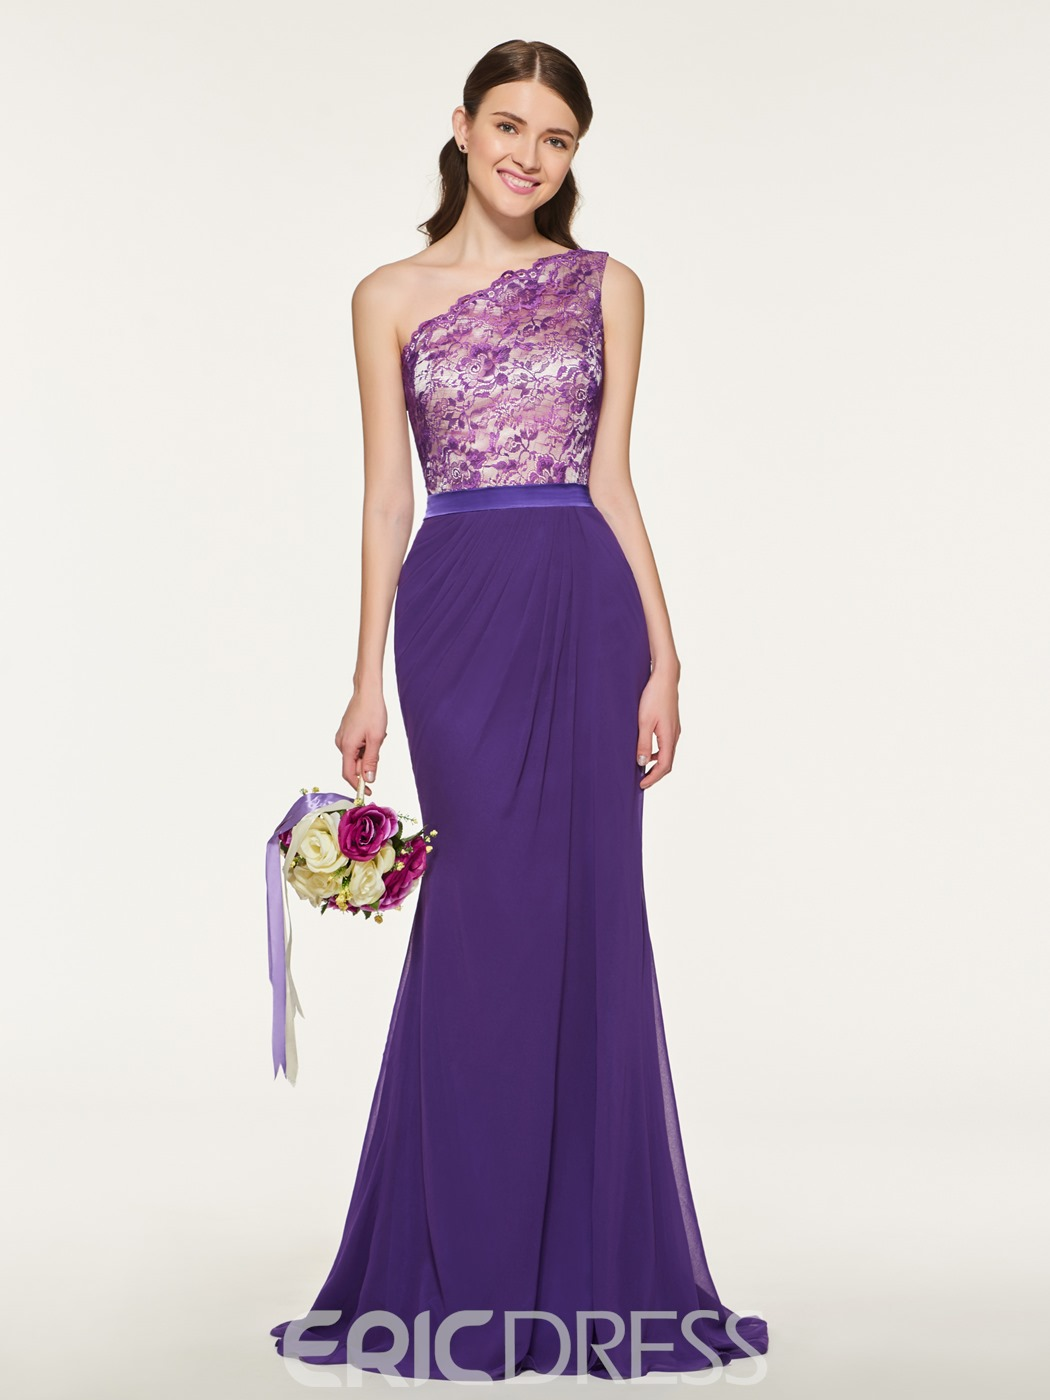 Beautiful Bridesmaid Dresses 2018 Online - Ericdress.com